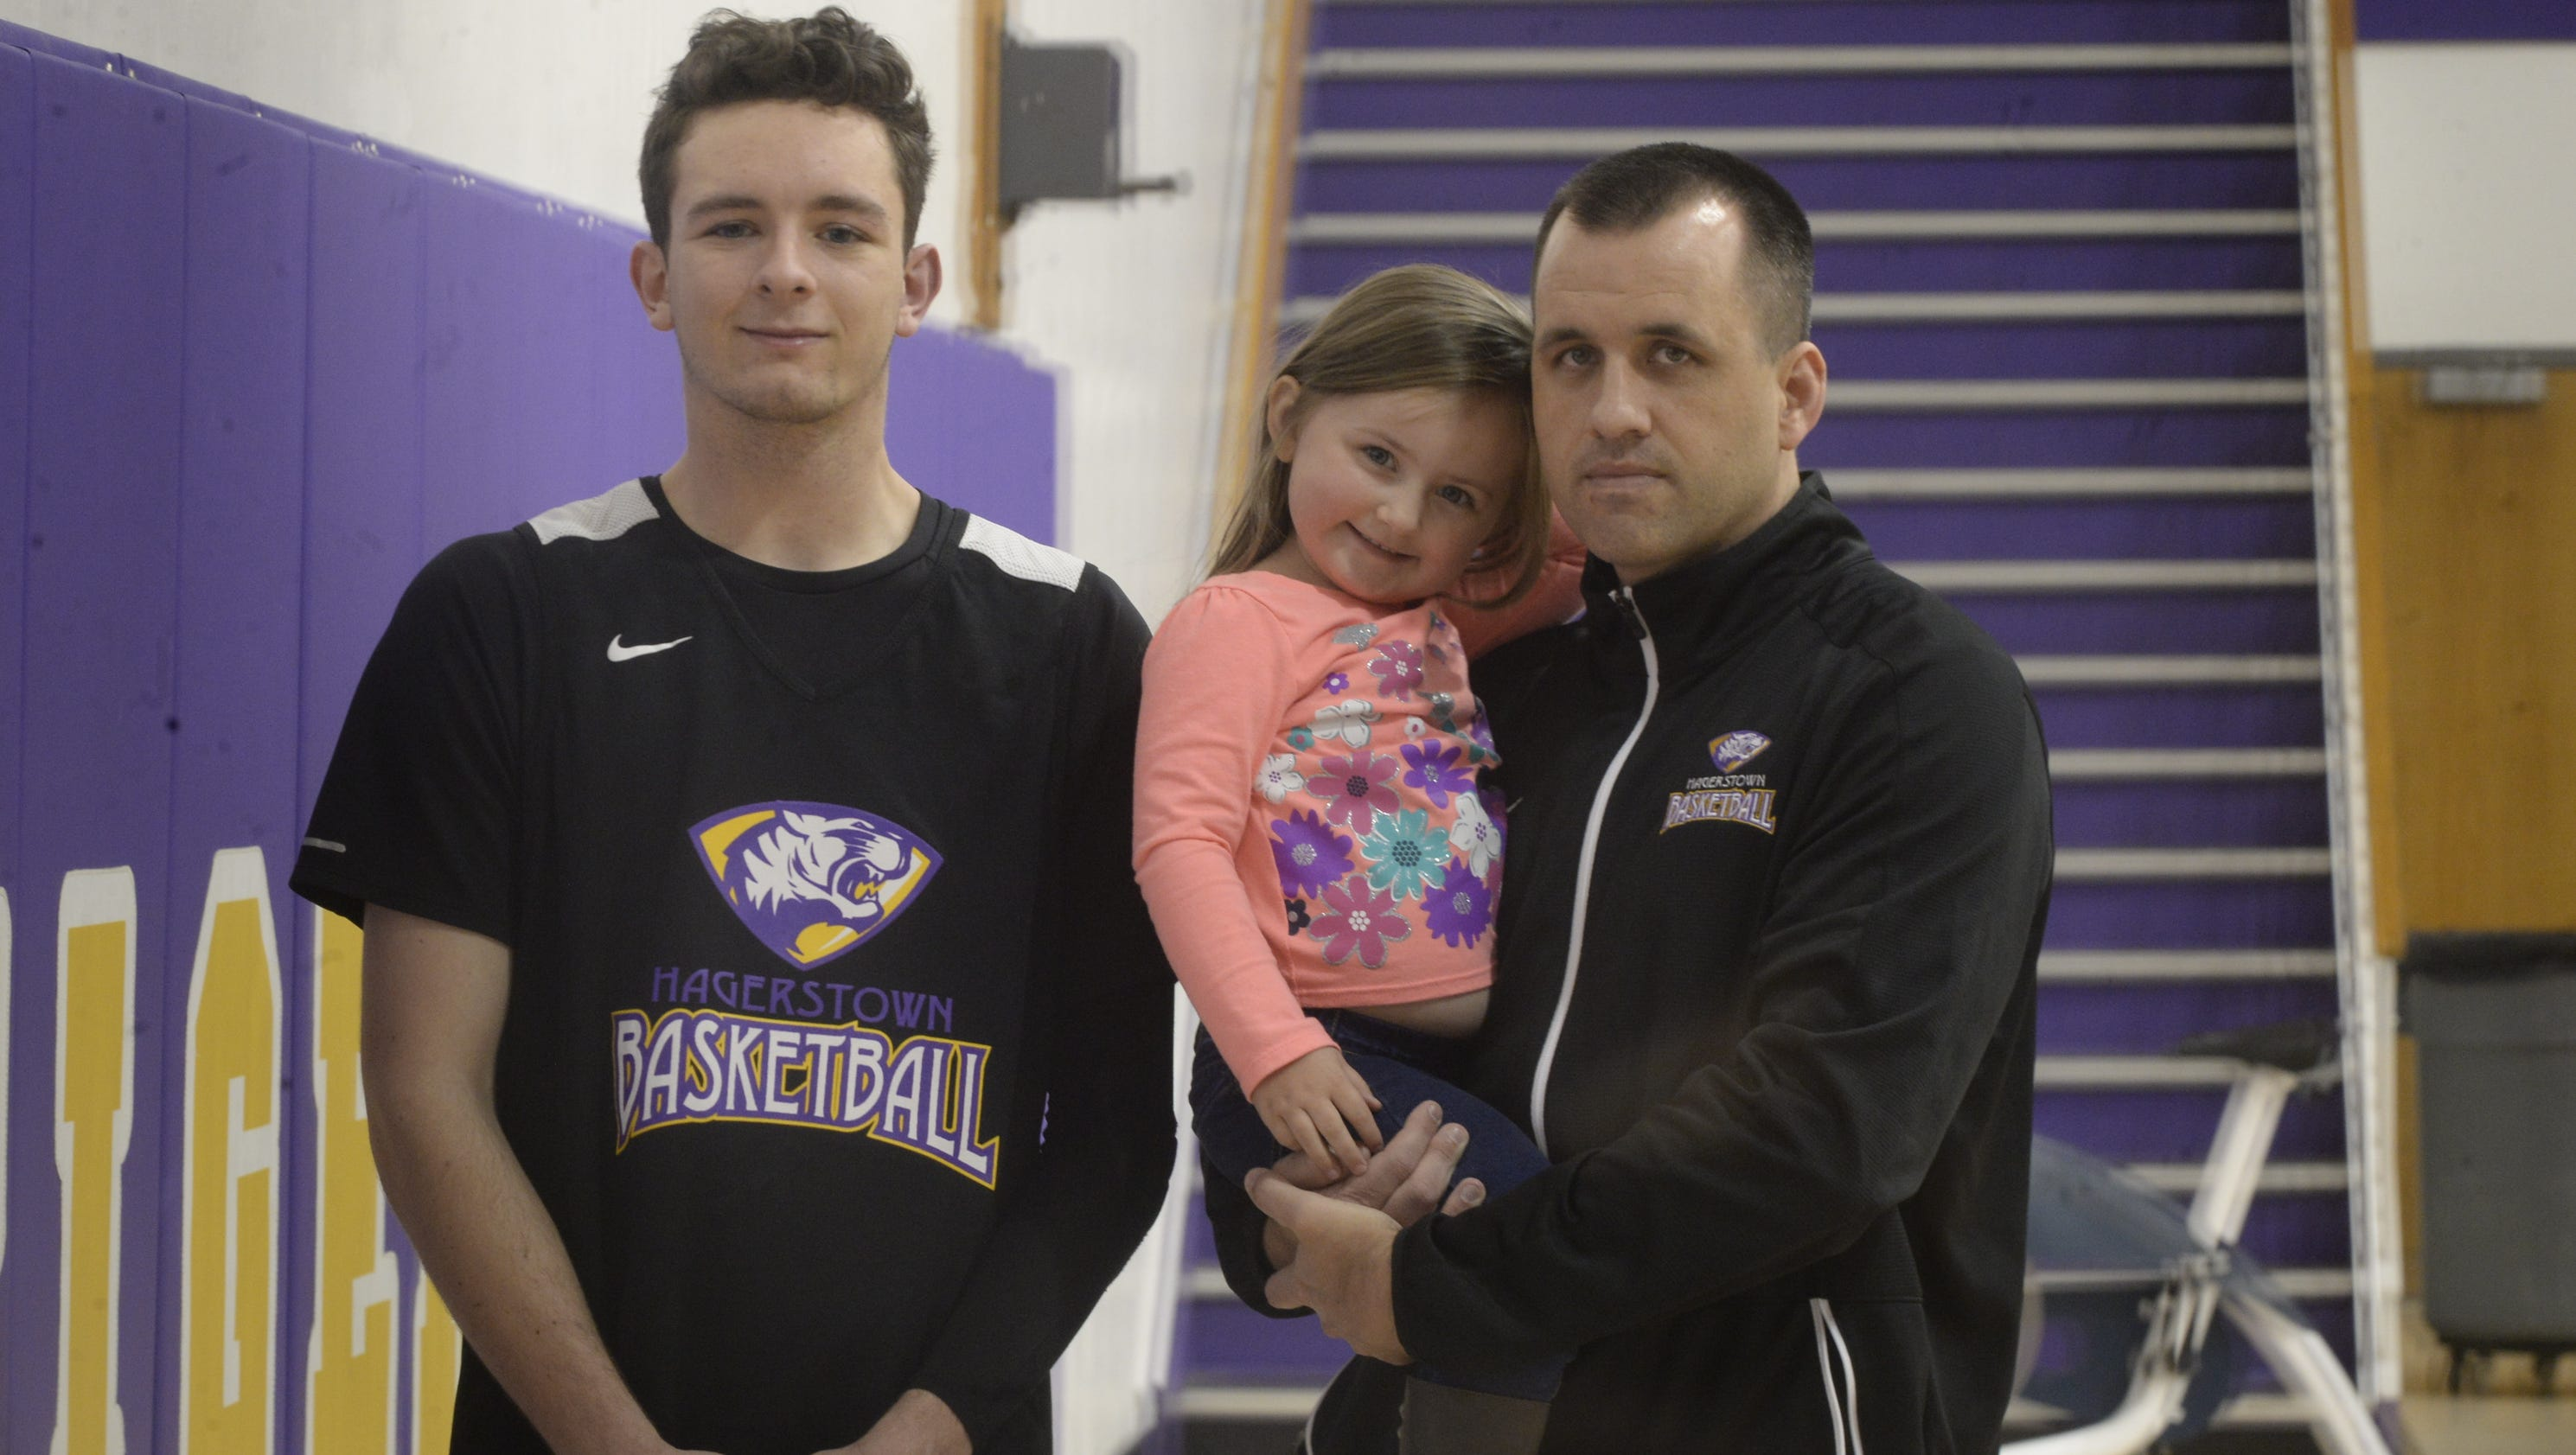 Diabetic athlete guides coach with daughter's condition